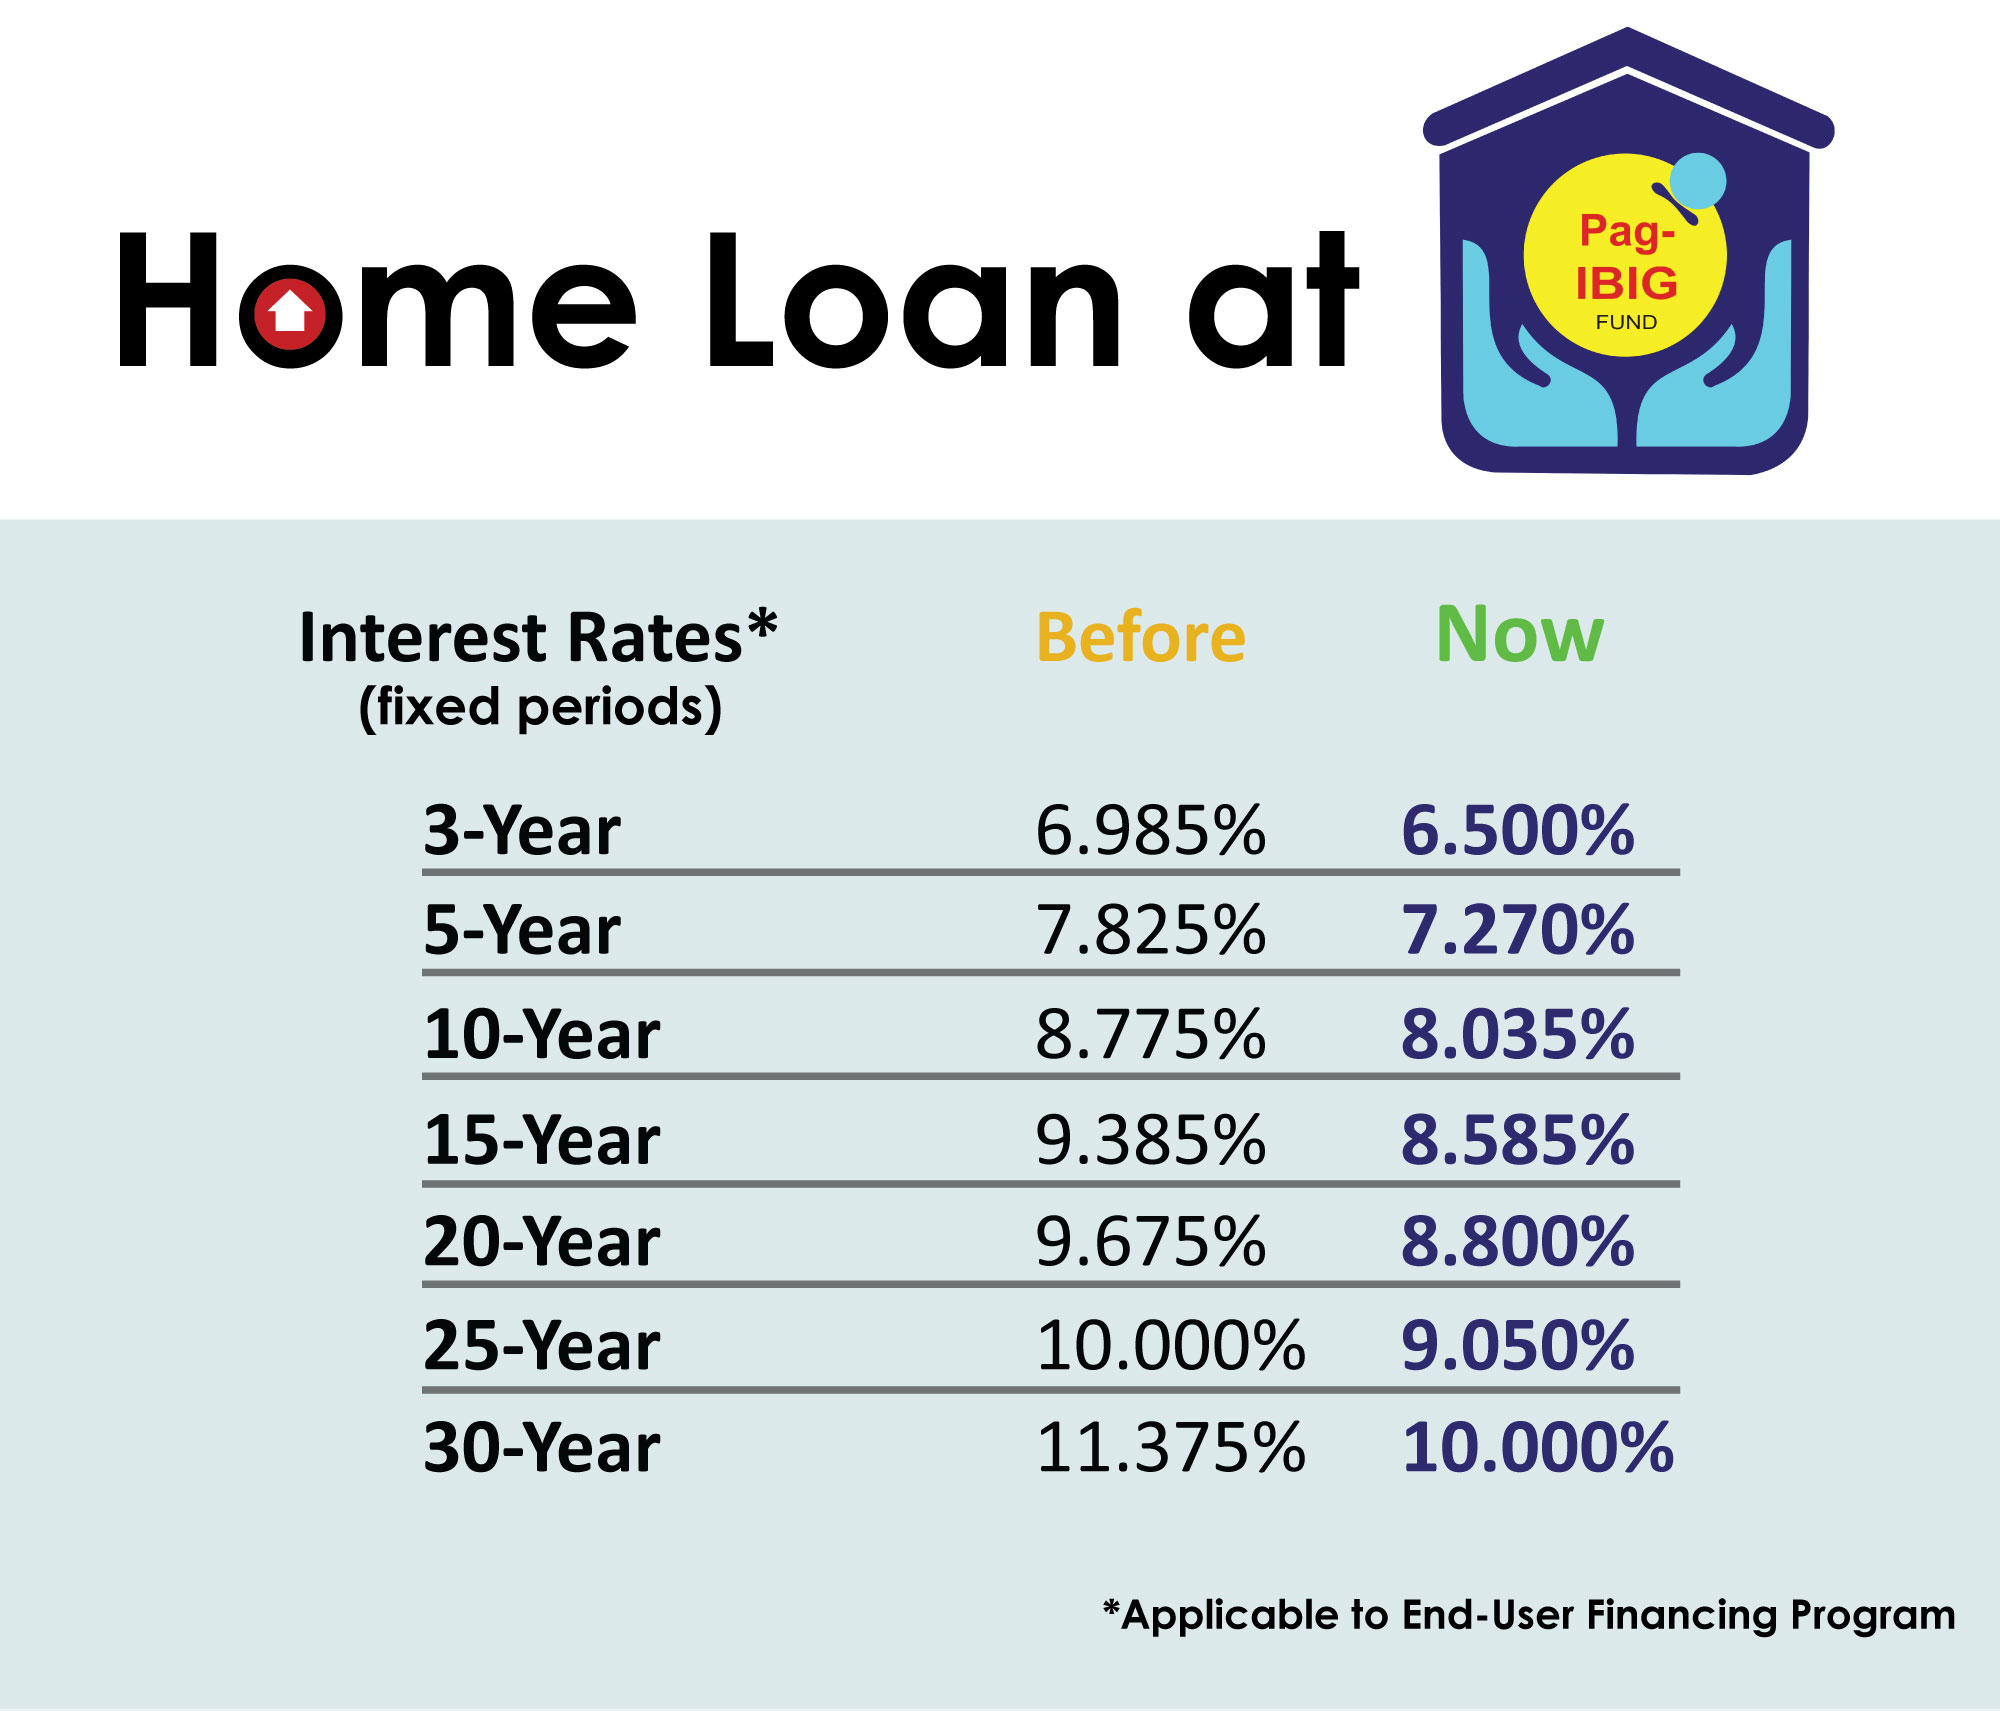 Pag-IBIG Fund Housing Loan Interest Rates